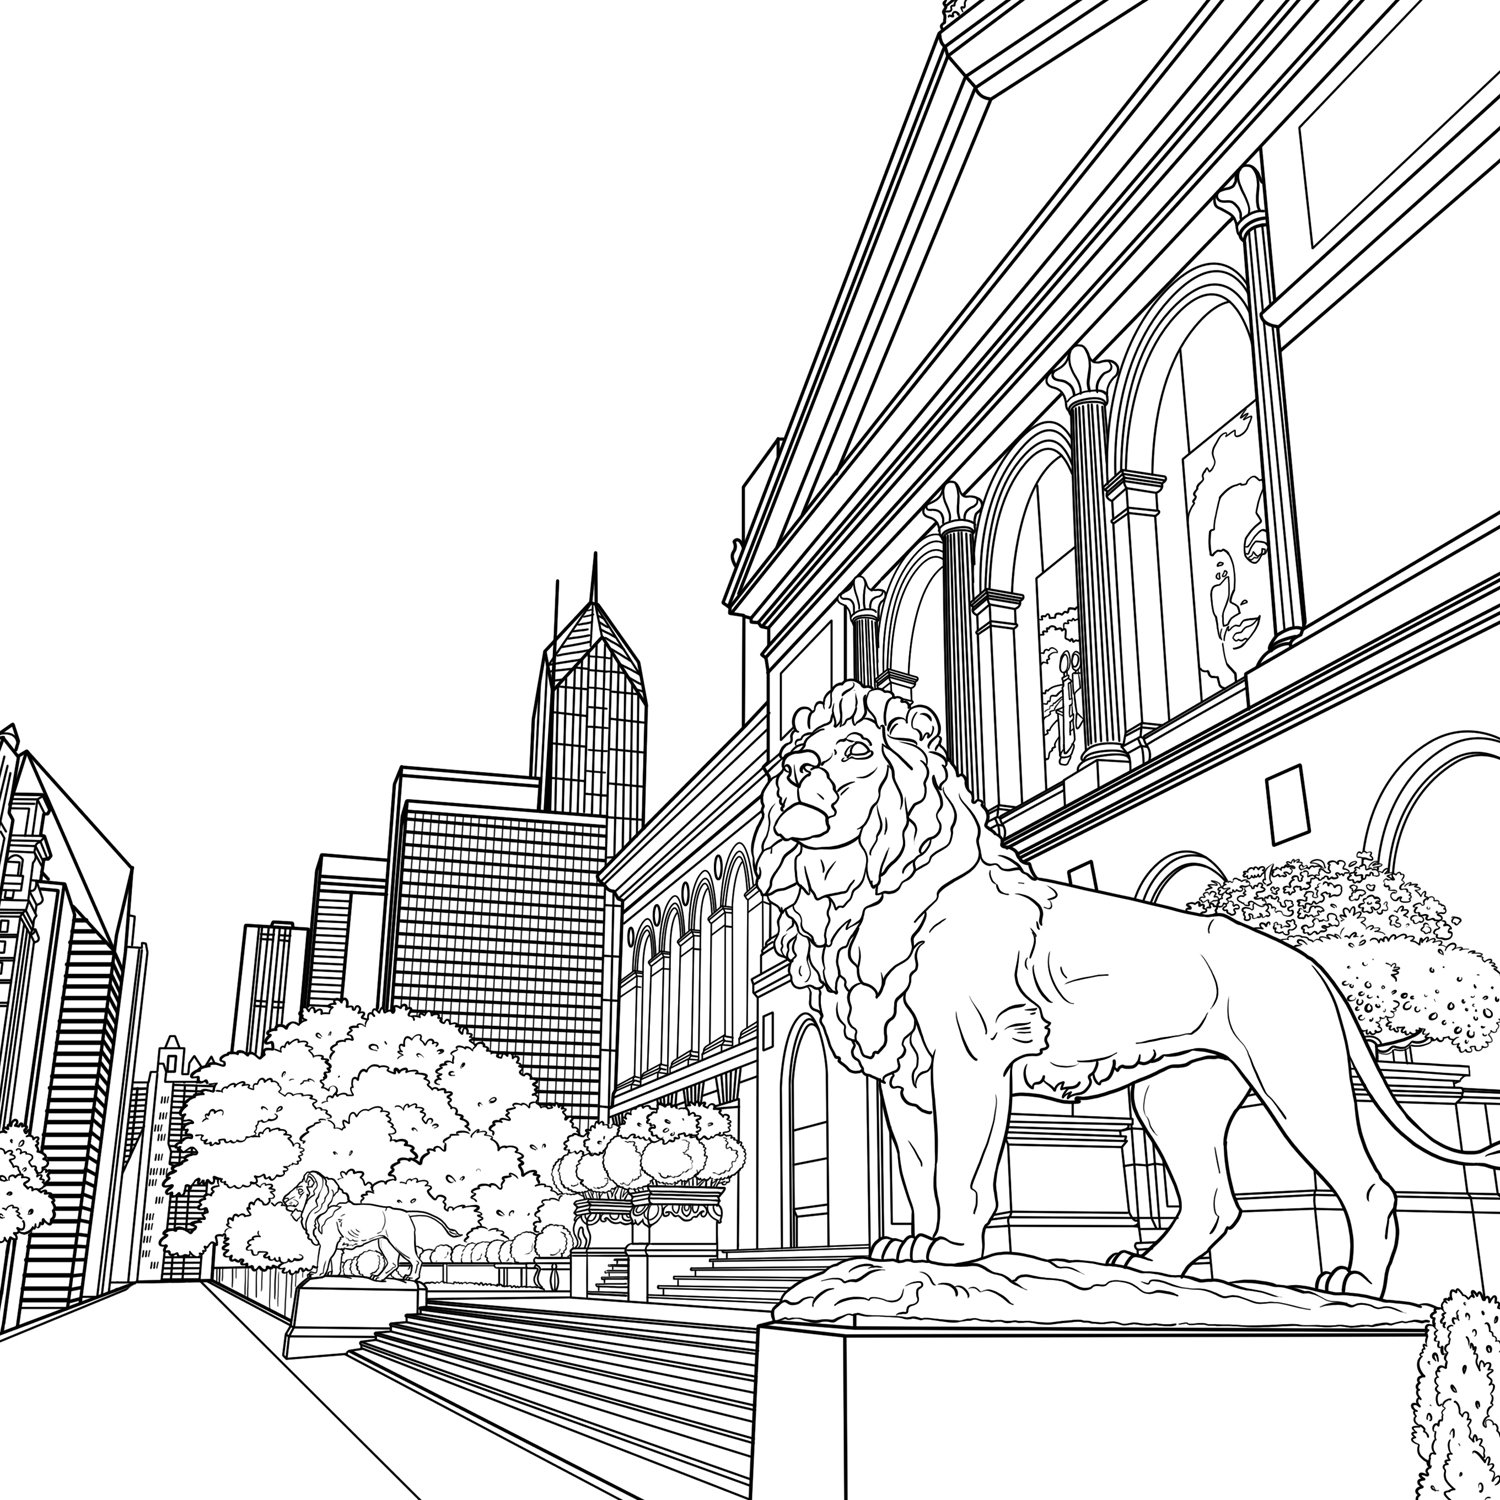 chicago skyline coloring page chicago city drawing at getdrawings free download coloring skyline chicago page